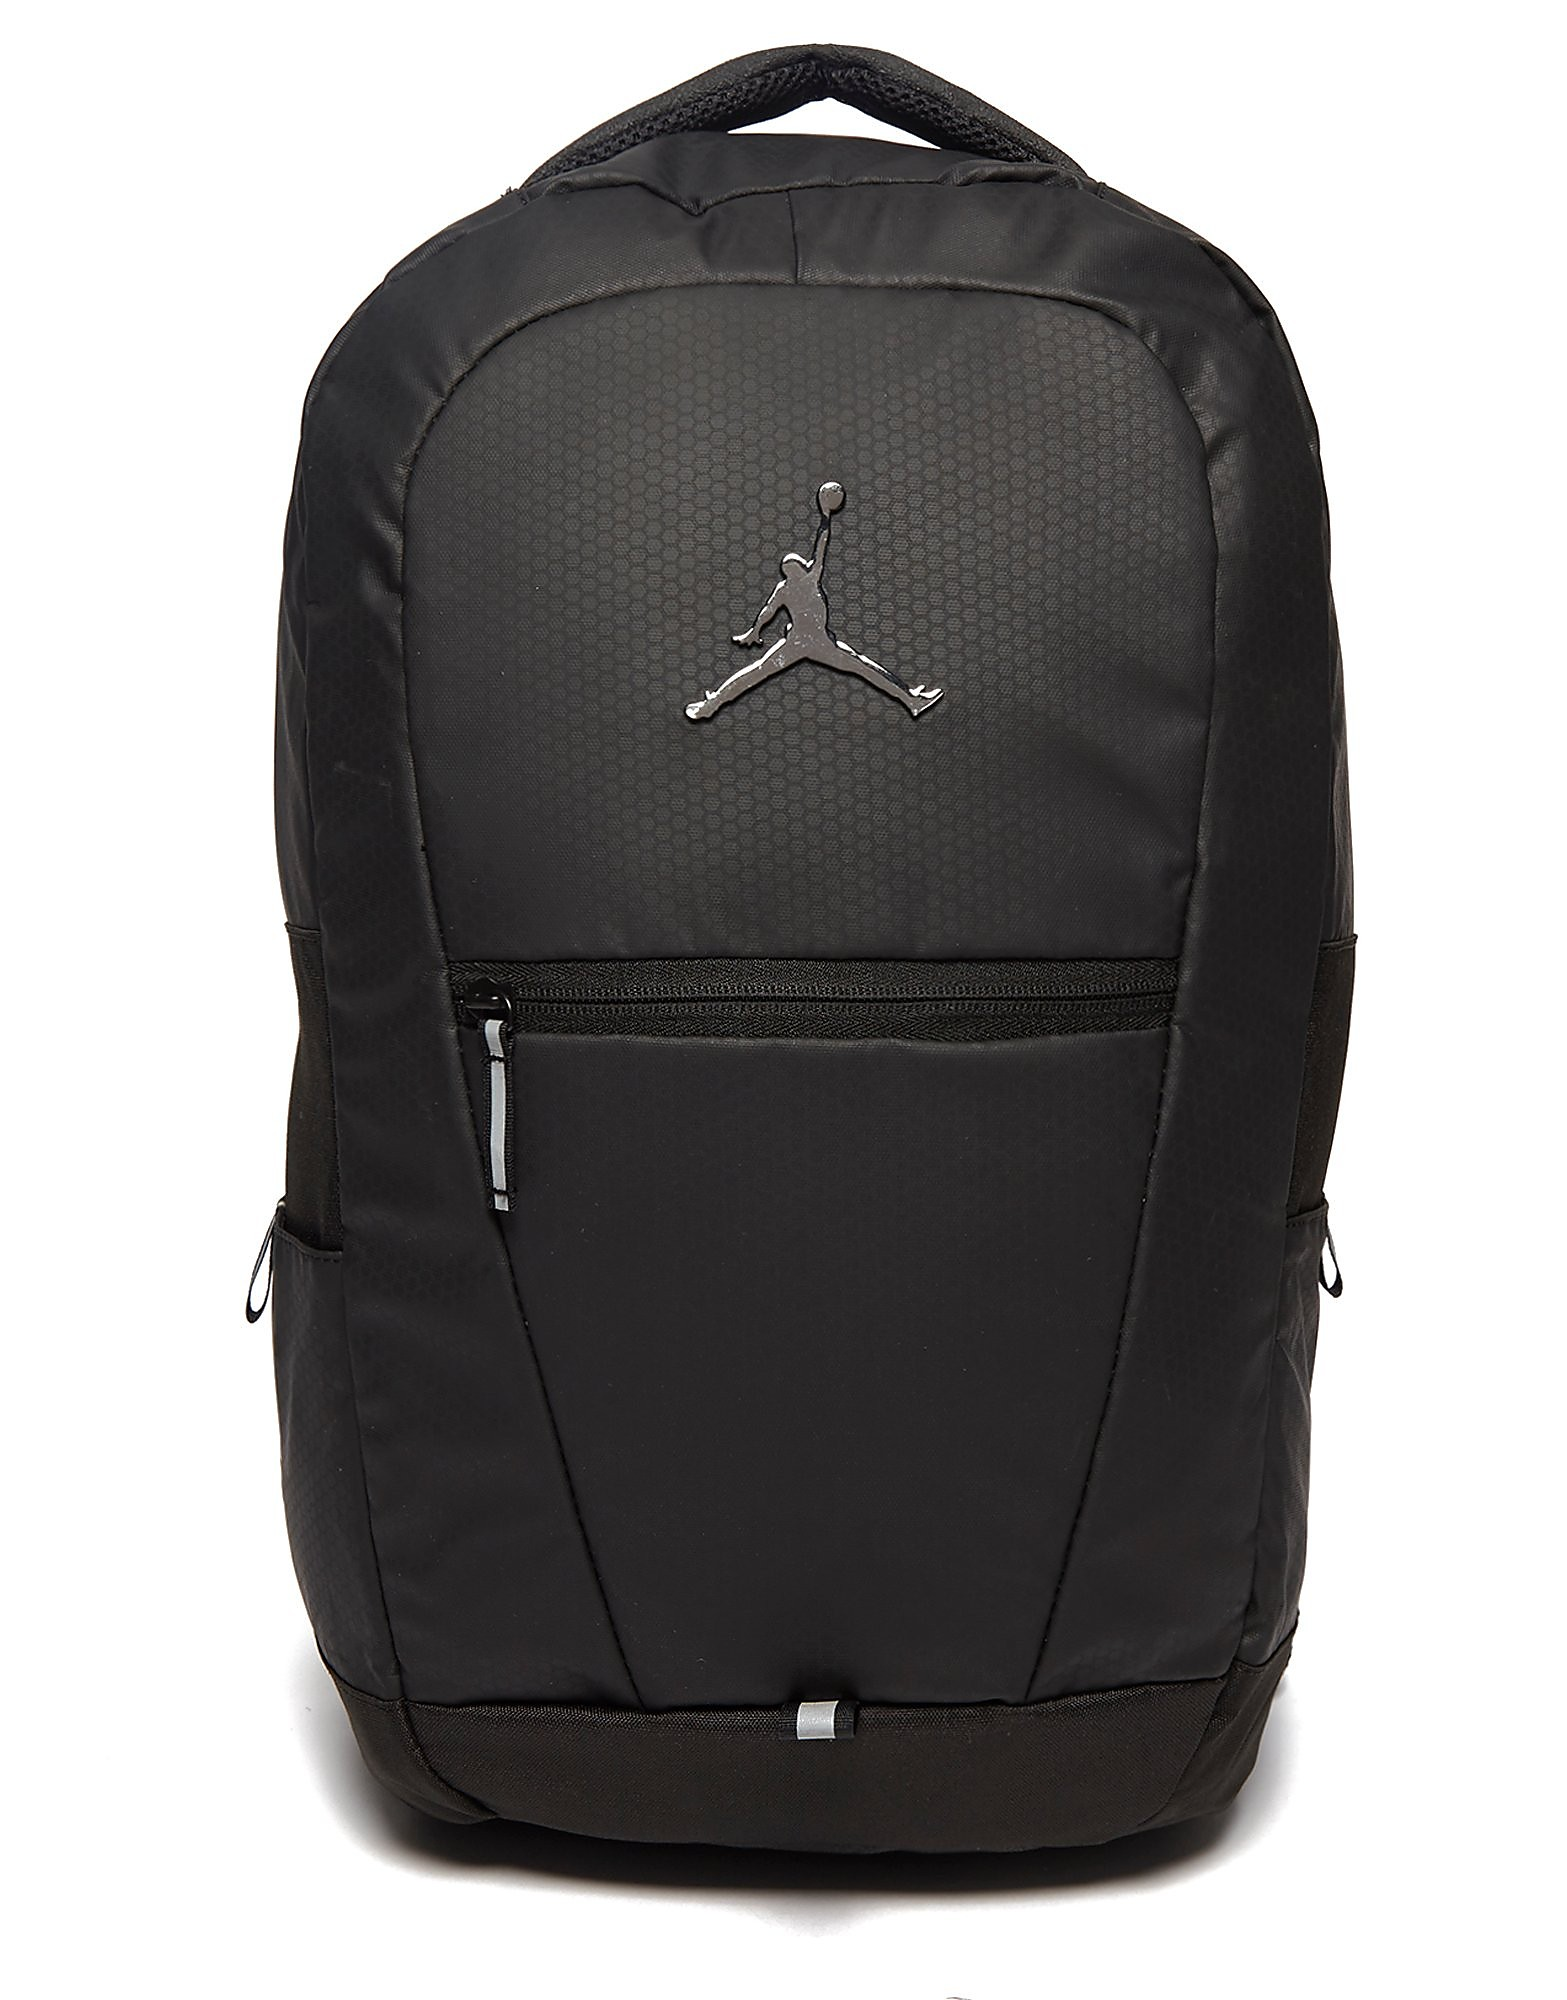 Jordan 110 Backpack